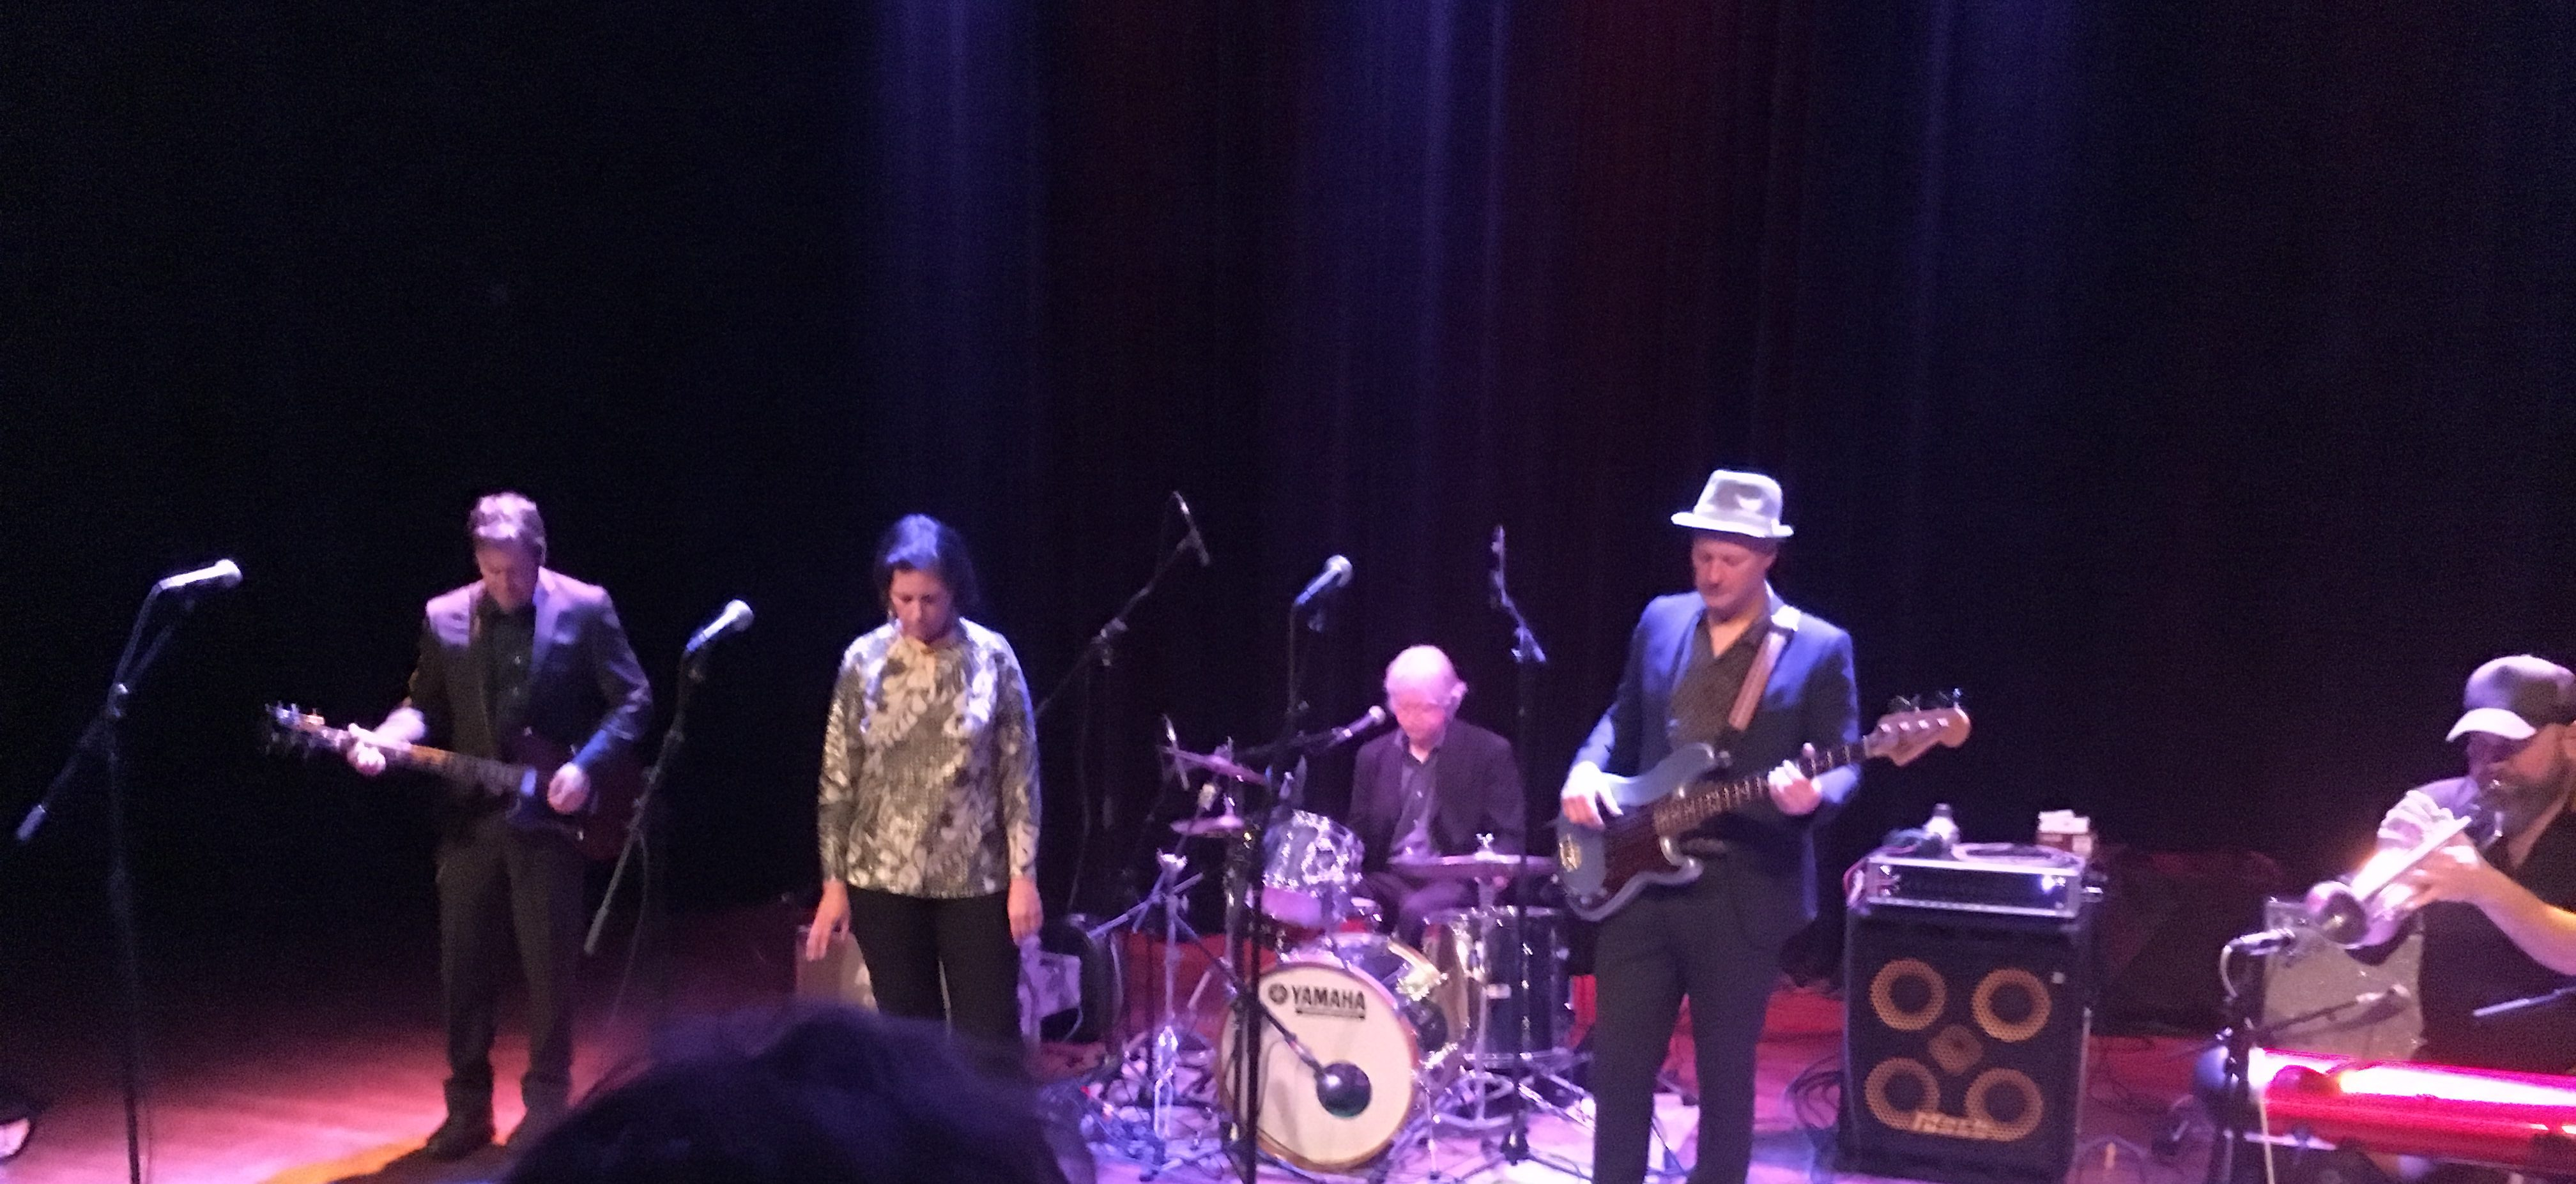 """Concertreview: The Delines, """"You almost made me cry"""" – Amy Boone"""